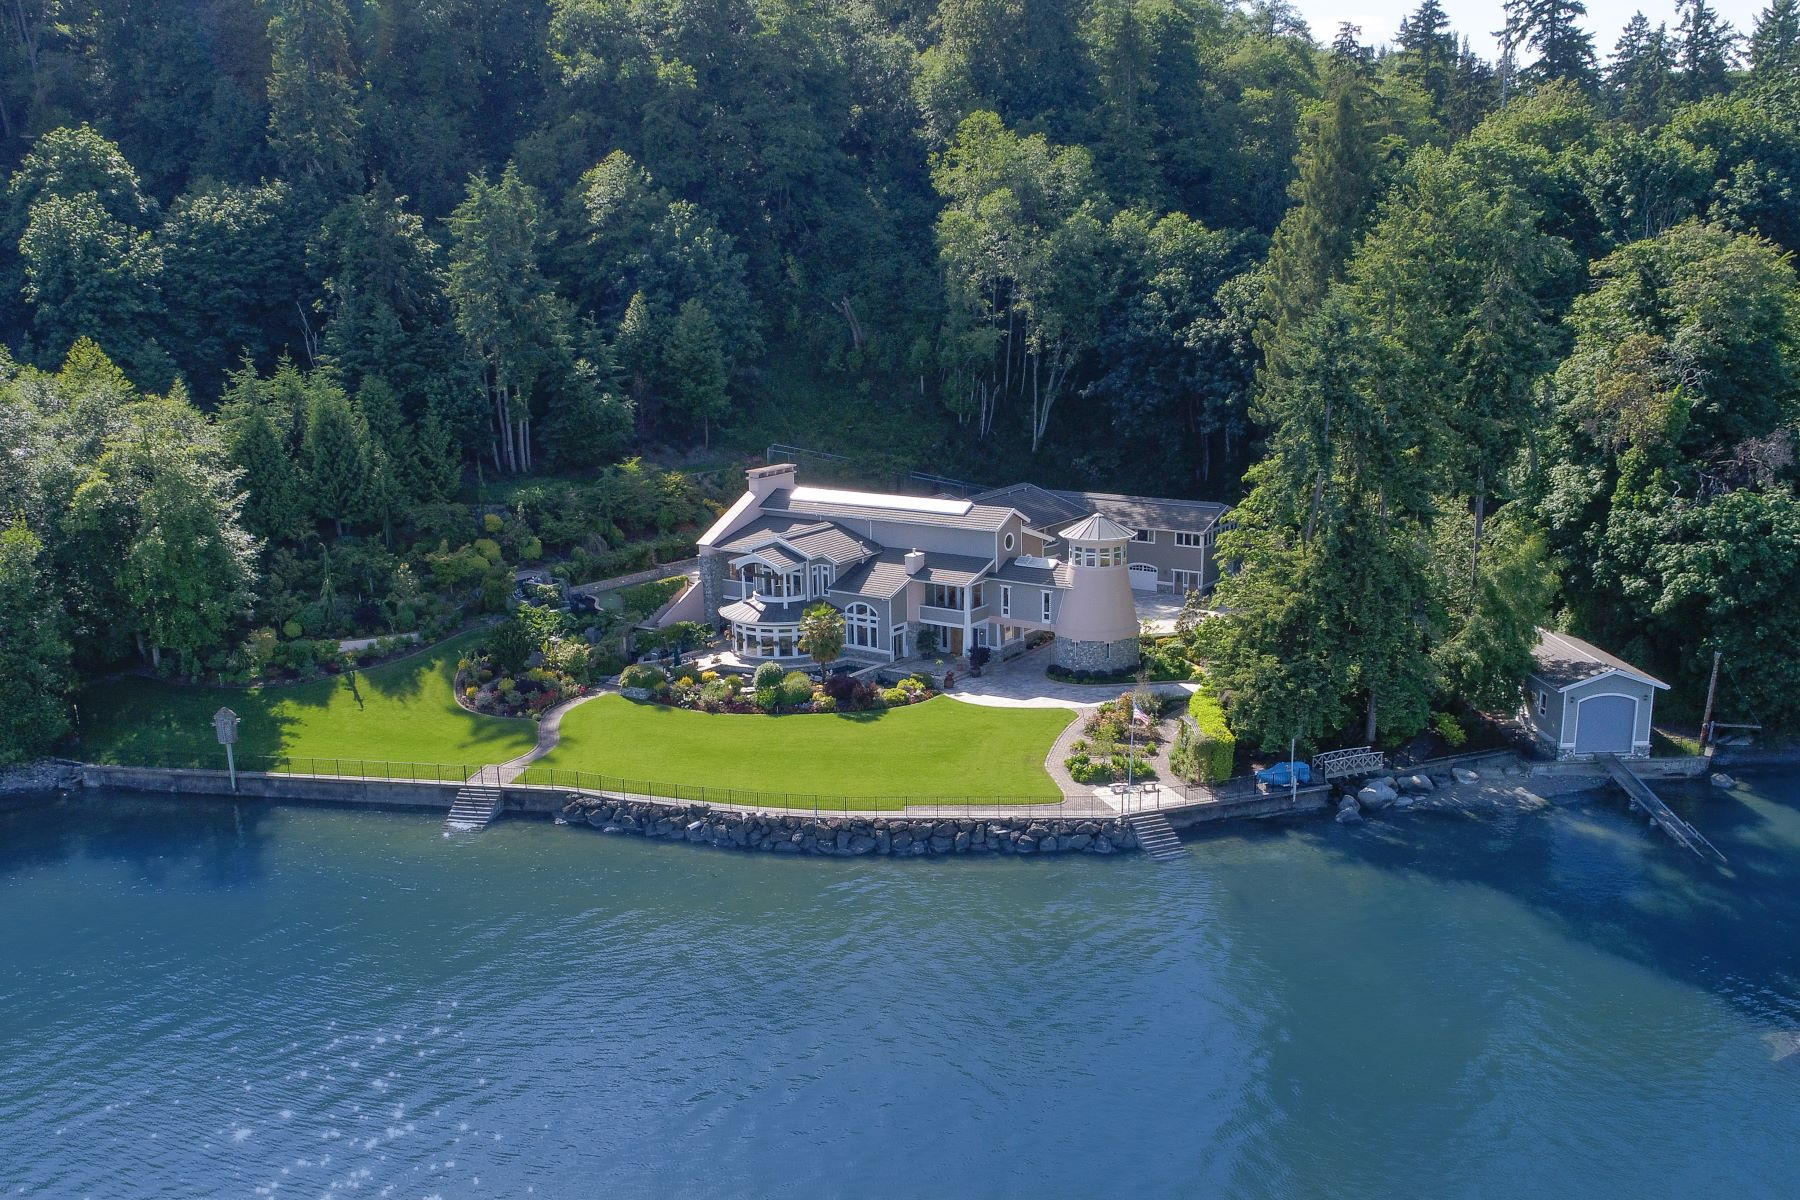 Maison unifamiliale pour l Vente à Private Palatial Waterfront 8415 SW Soper Road Vashon, Washington, 98070 États-Unis